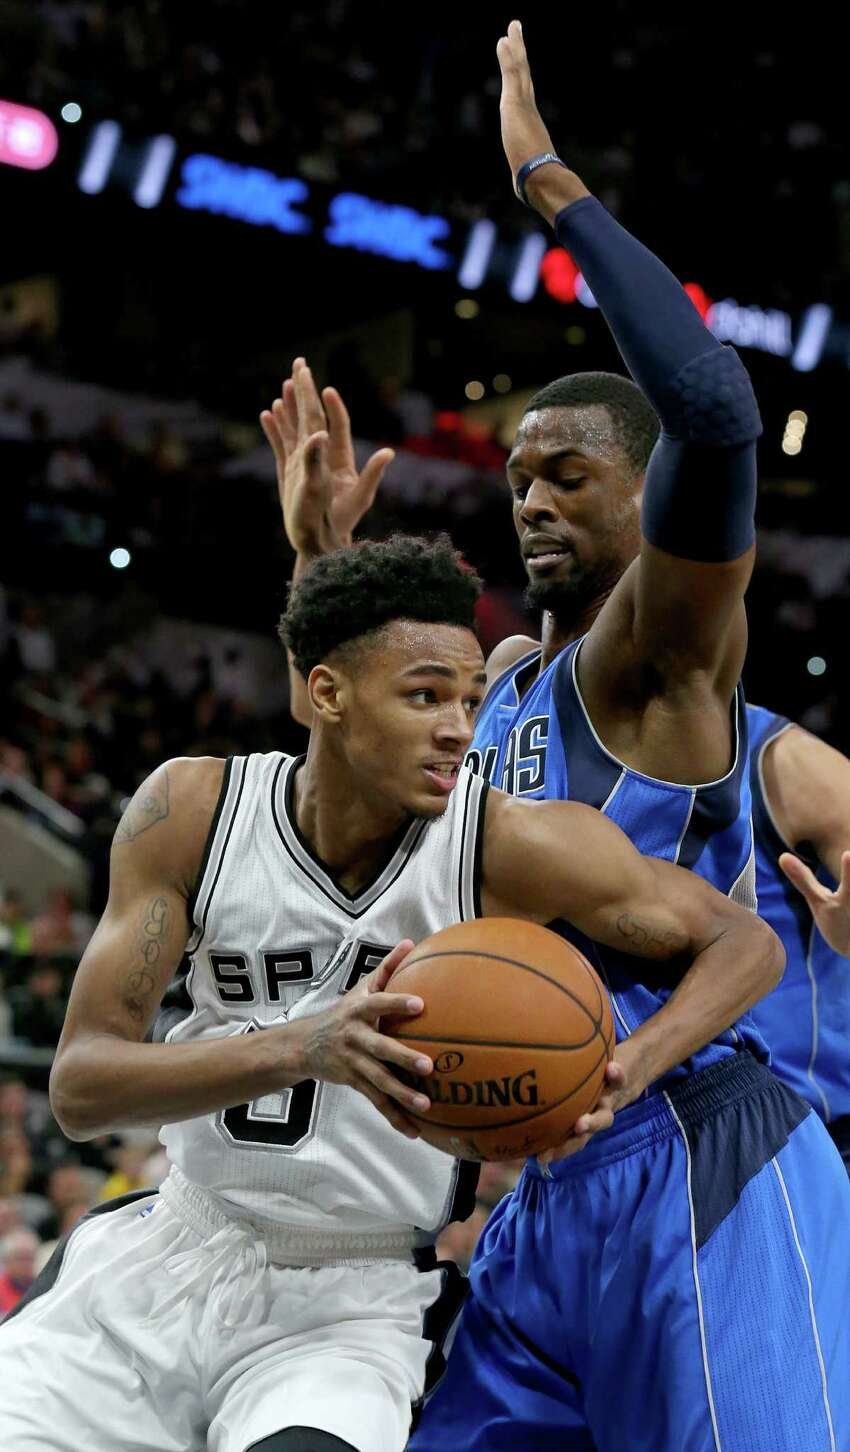 San Antonio Spurs' Dejounte Murray looks for room around Dallas Mavericks' Harrison Barnes during first half action Monday Nov. 21, 2016 at the AT&T Center.